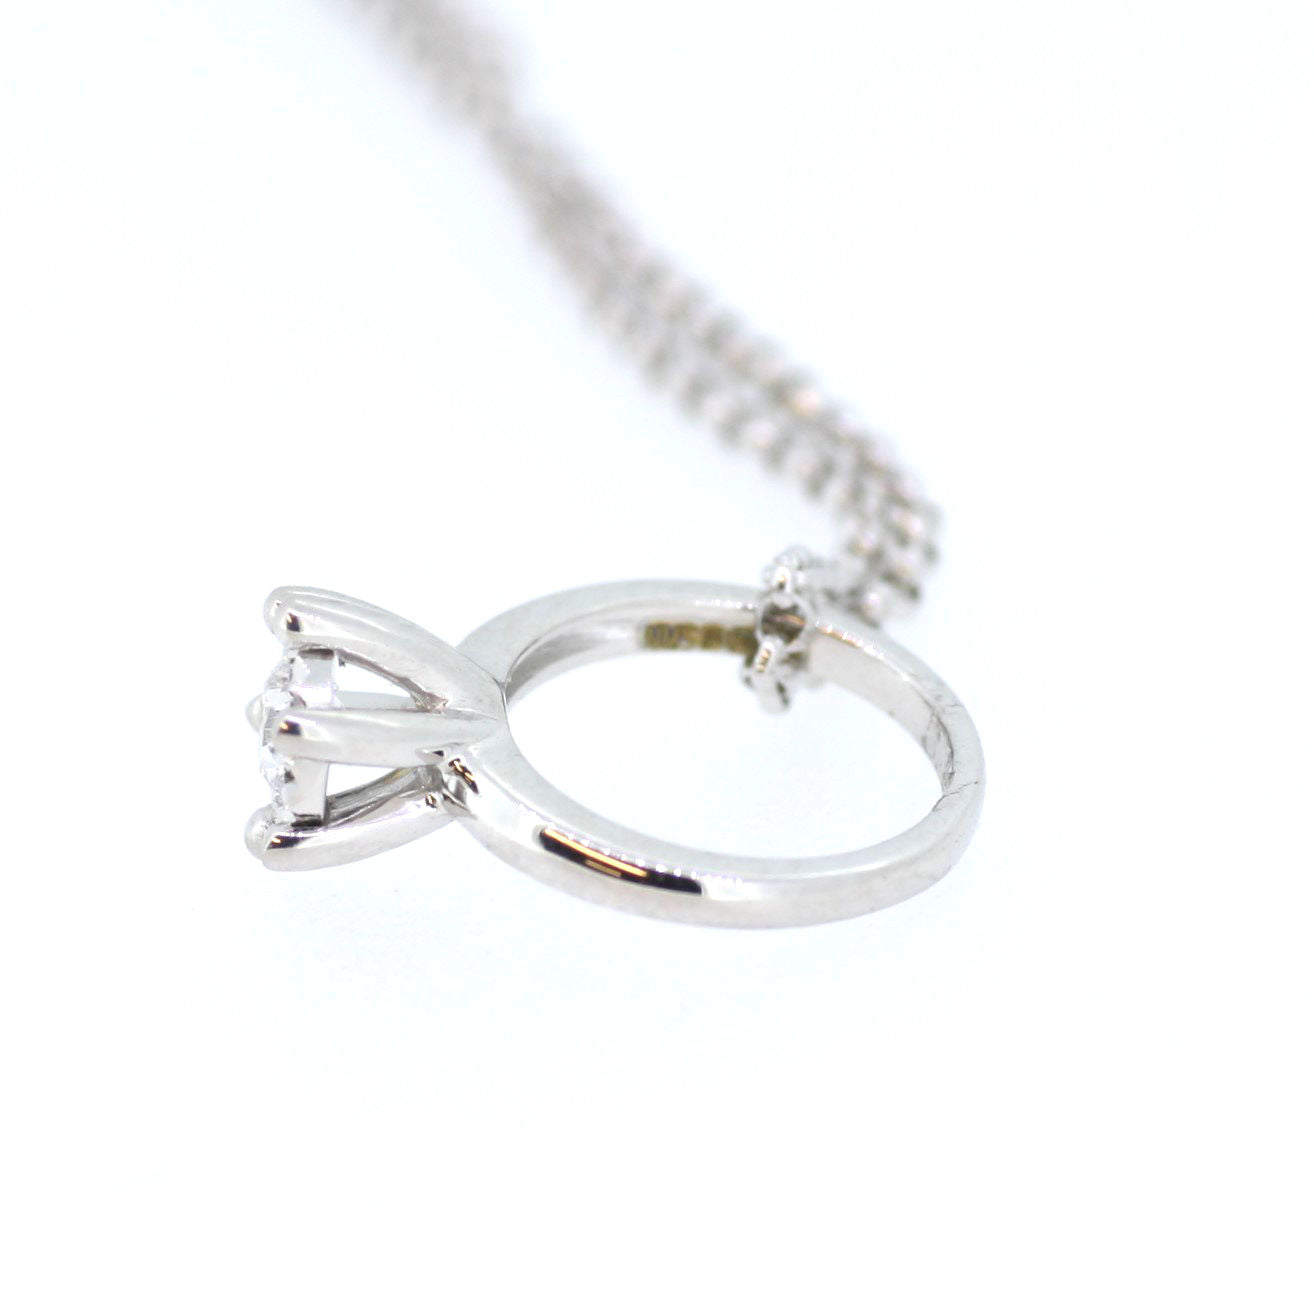 Mini-Ring on Chain